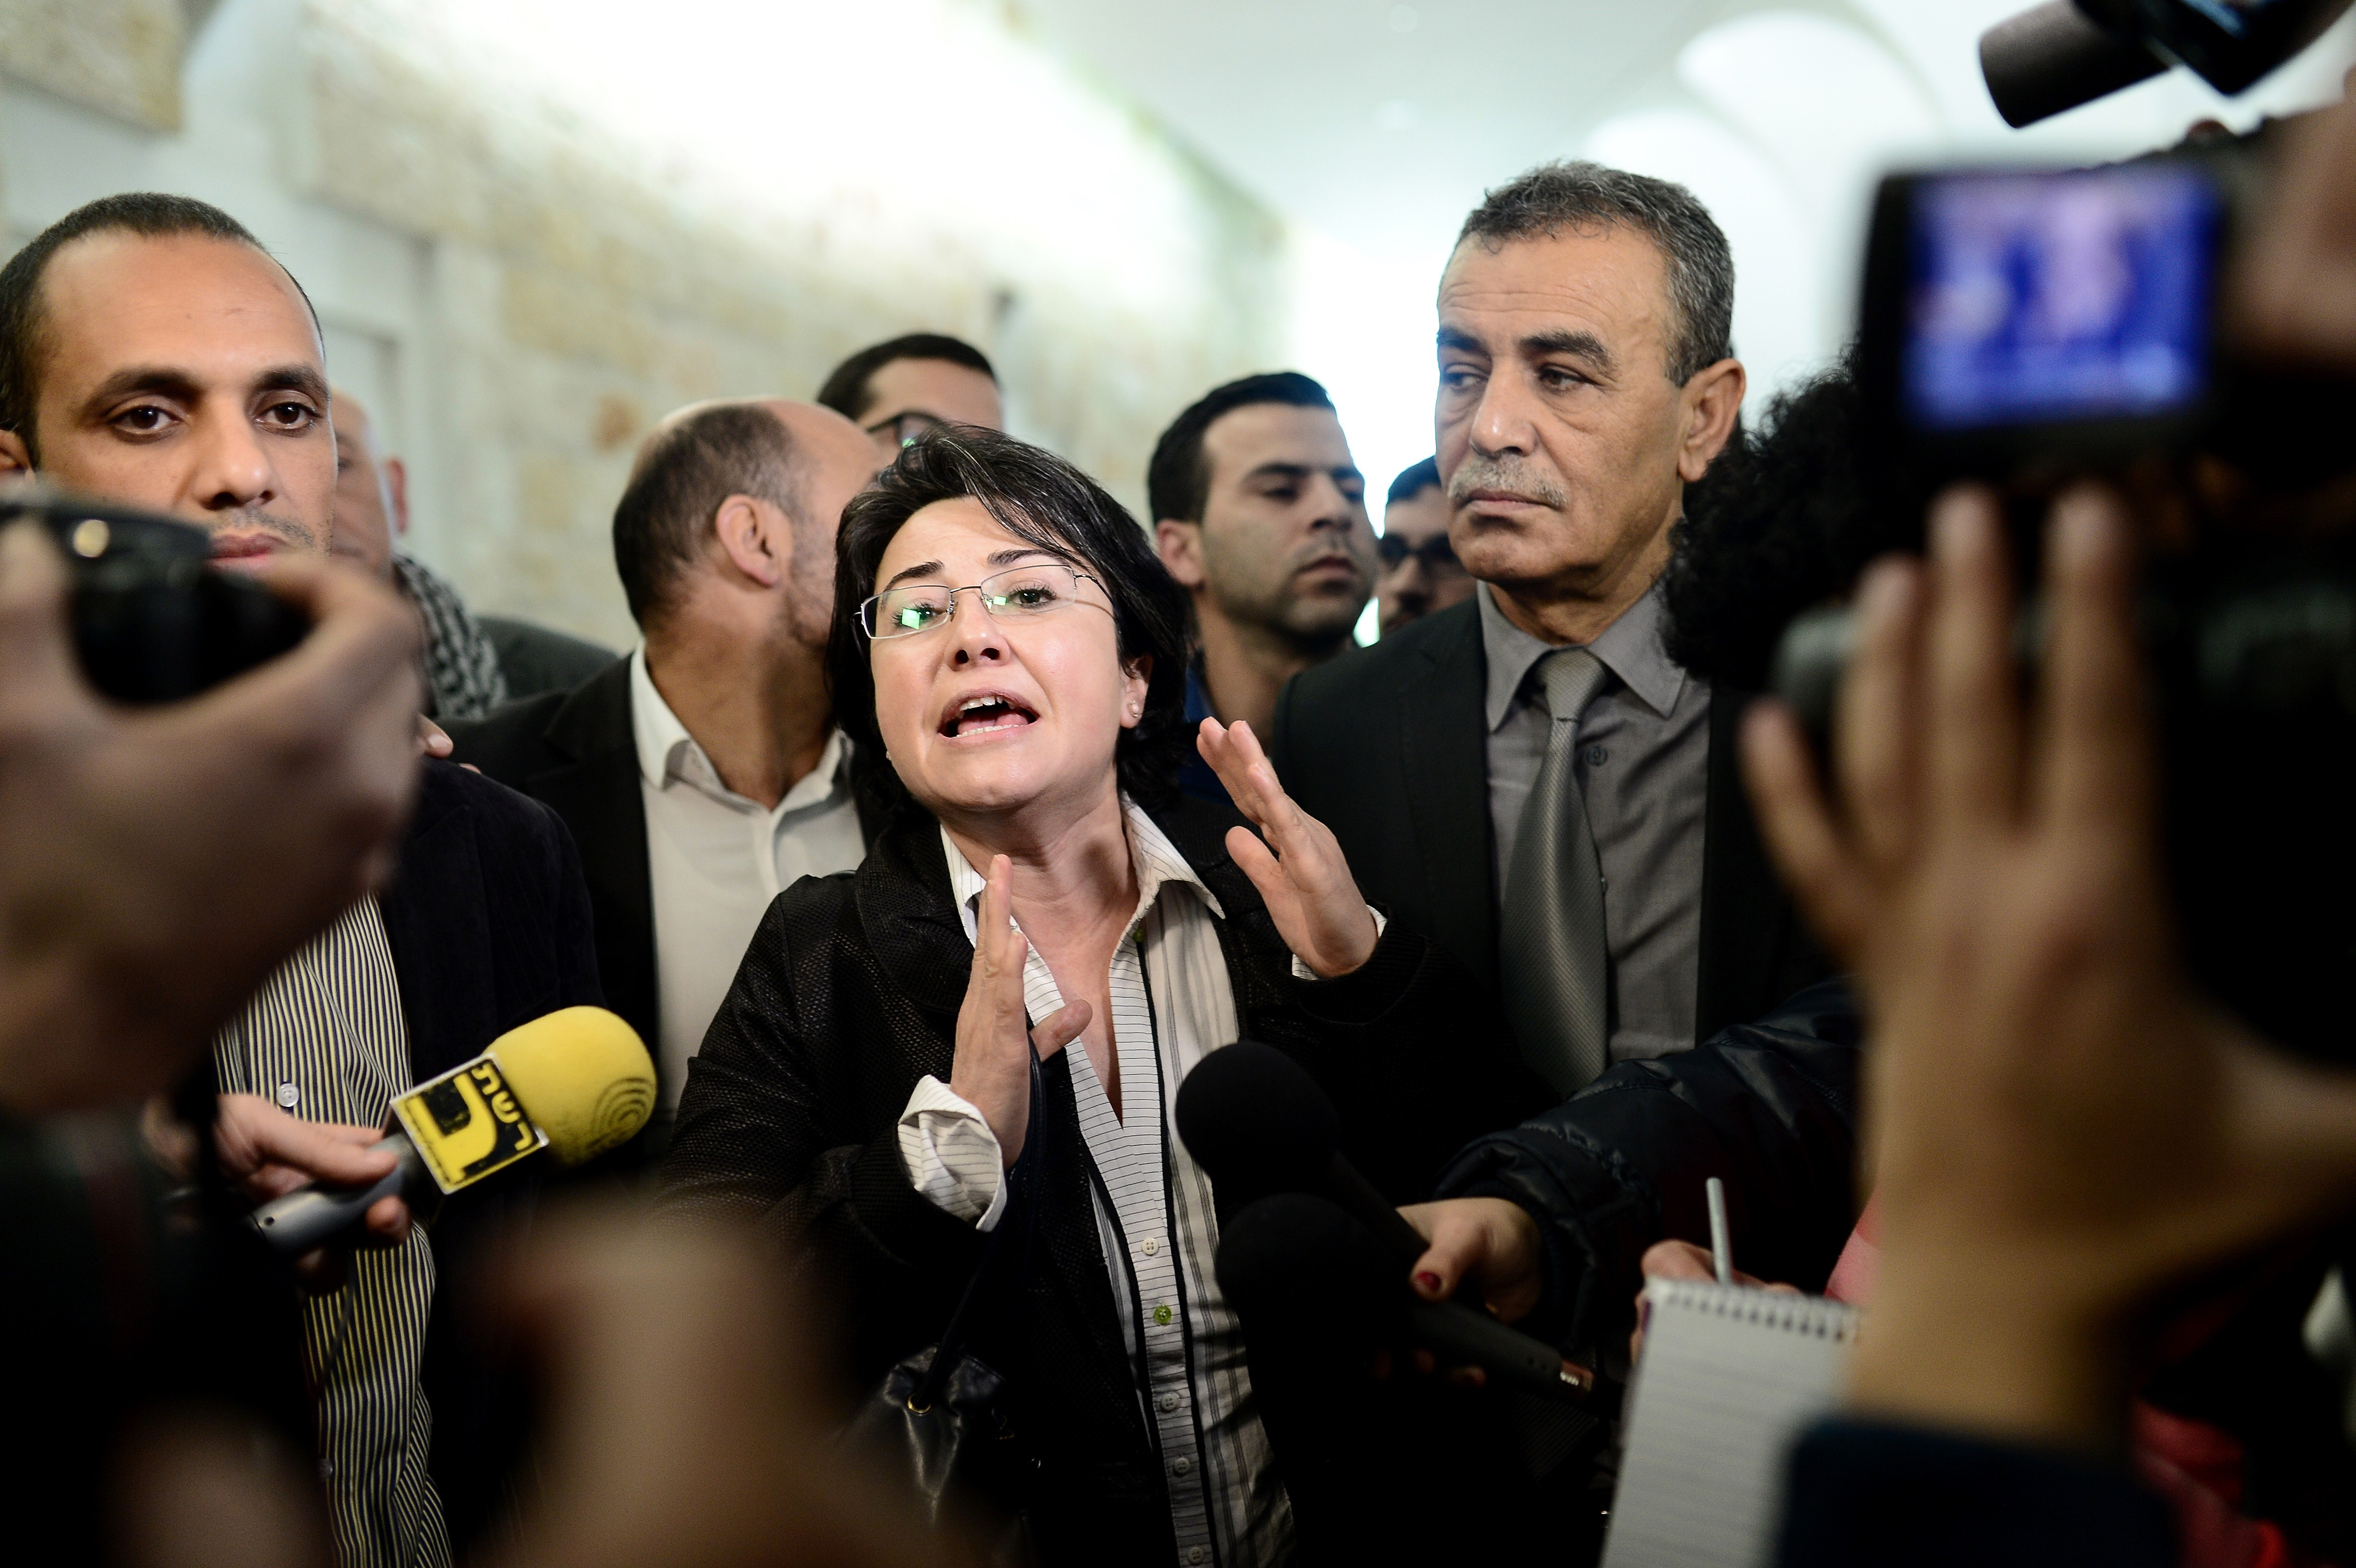 Arab member of Israel's Knesset Haneen Zoabi (C) speaks to the press after the court decision about Israels ban of Arab lawmaker Zoabi from election in Jerusalem on February 14, 2015.